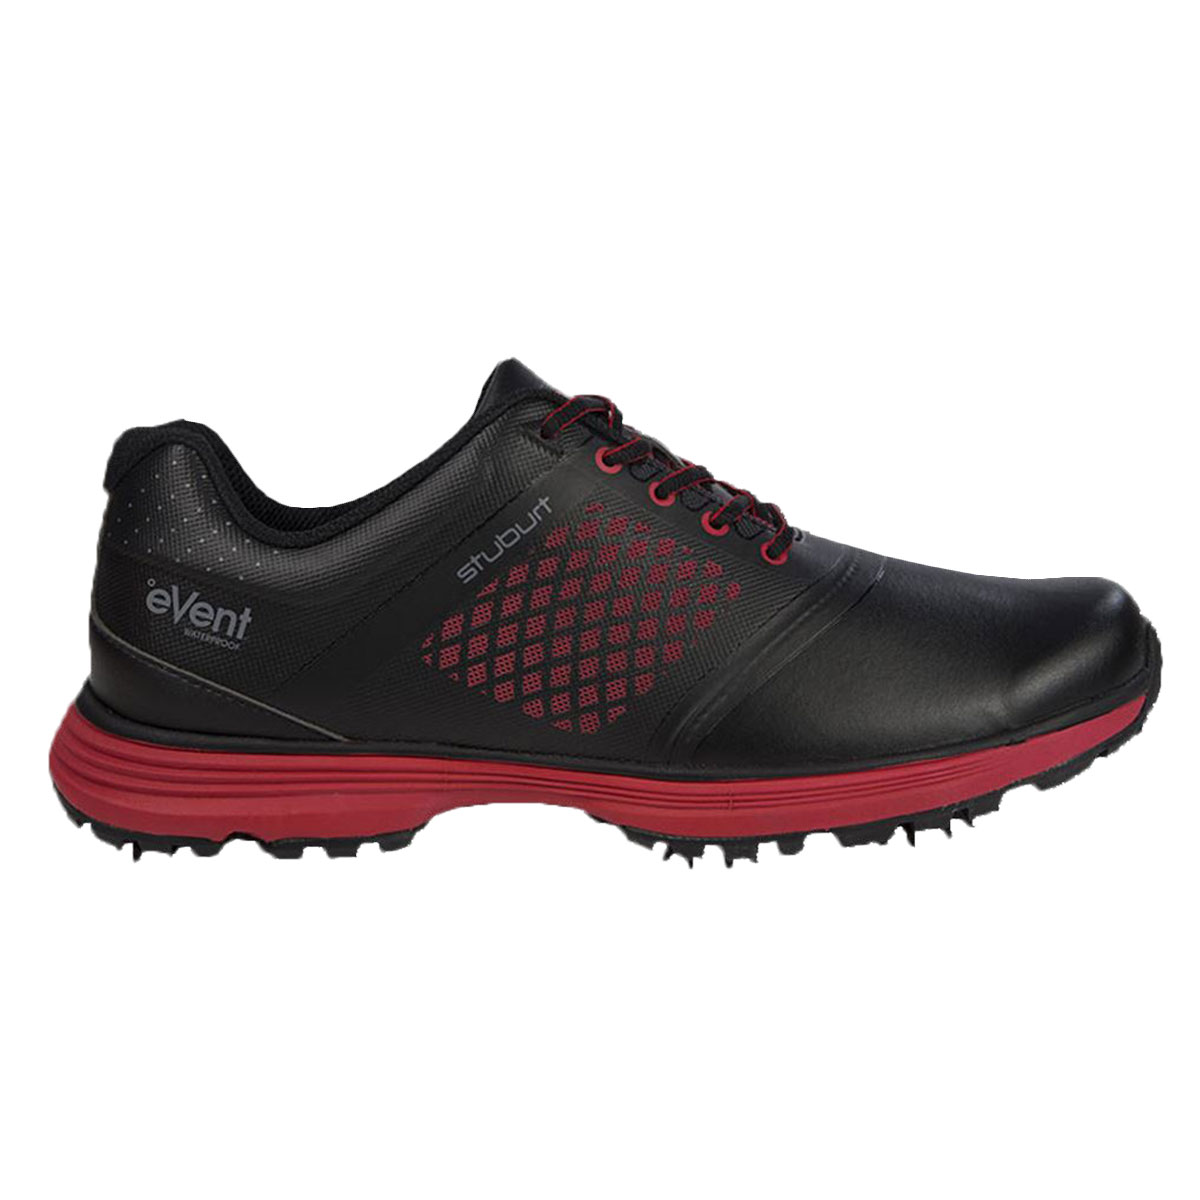 Stuburt Helium Golf Shoes